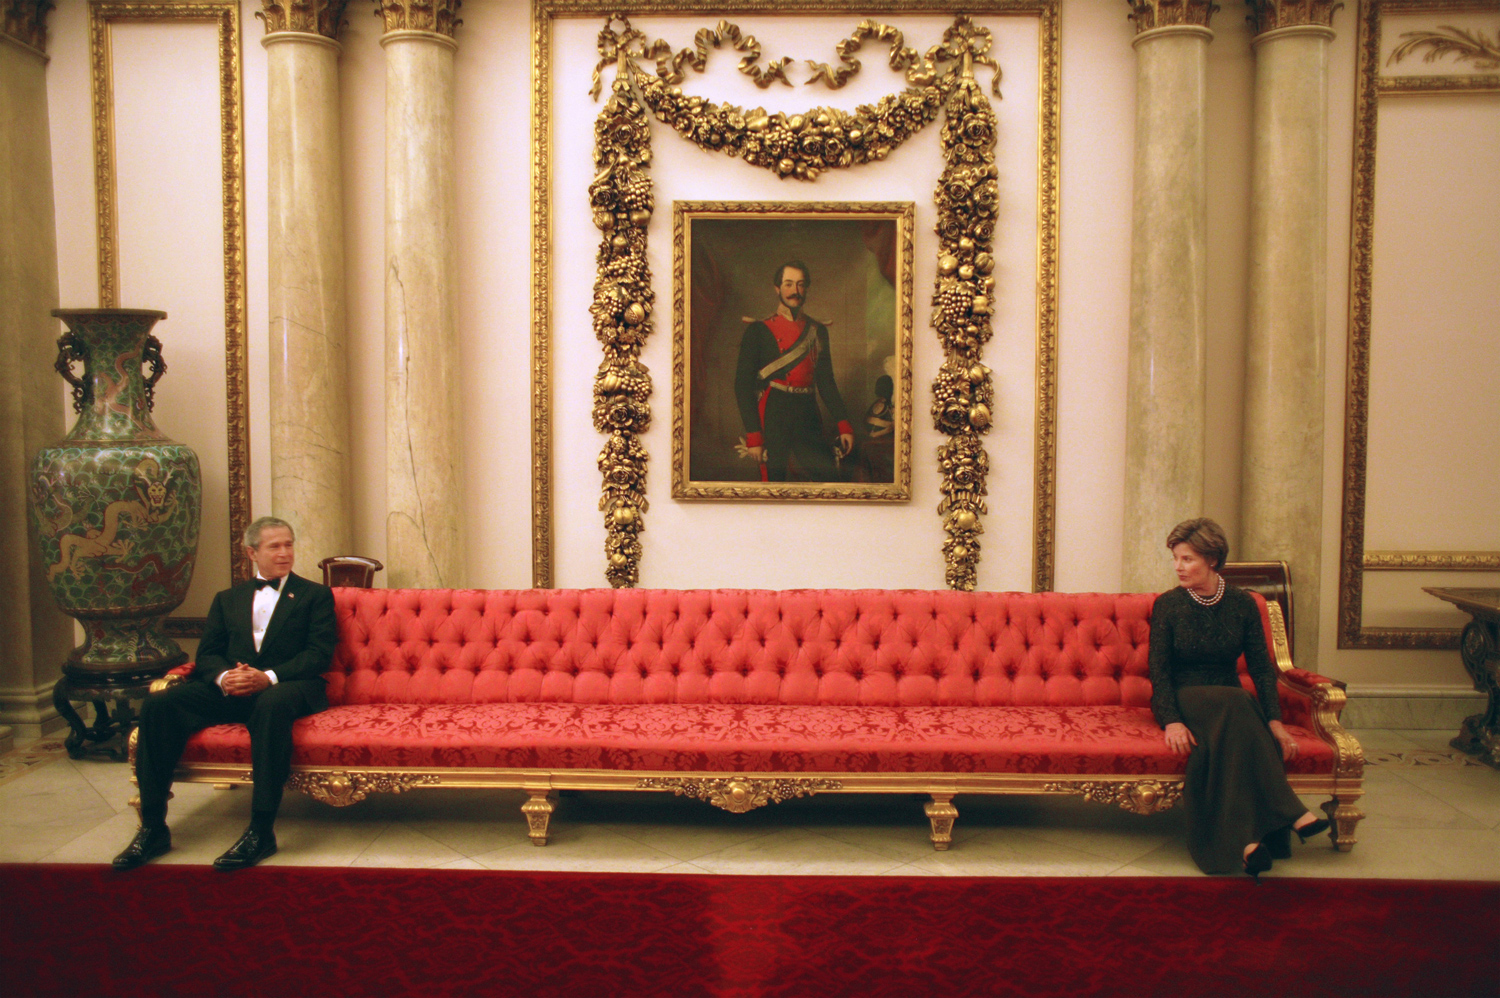 "Nov. 20, 2003. President and Mrs. Bush enjoy the moment as they sit on either ends of a couch prior to a social event at Buckingham Palace.""It was fun to be at Buckingham Palace, and not just for me. The President and Mrs. Bush were like kids on this very long couch, playfully looking at one another from each end."""